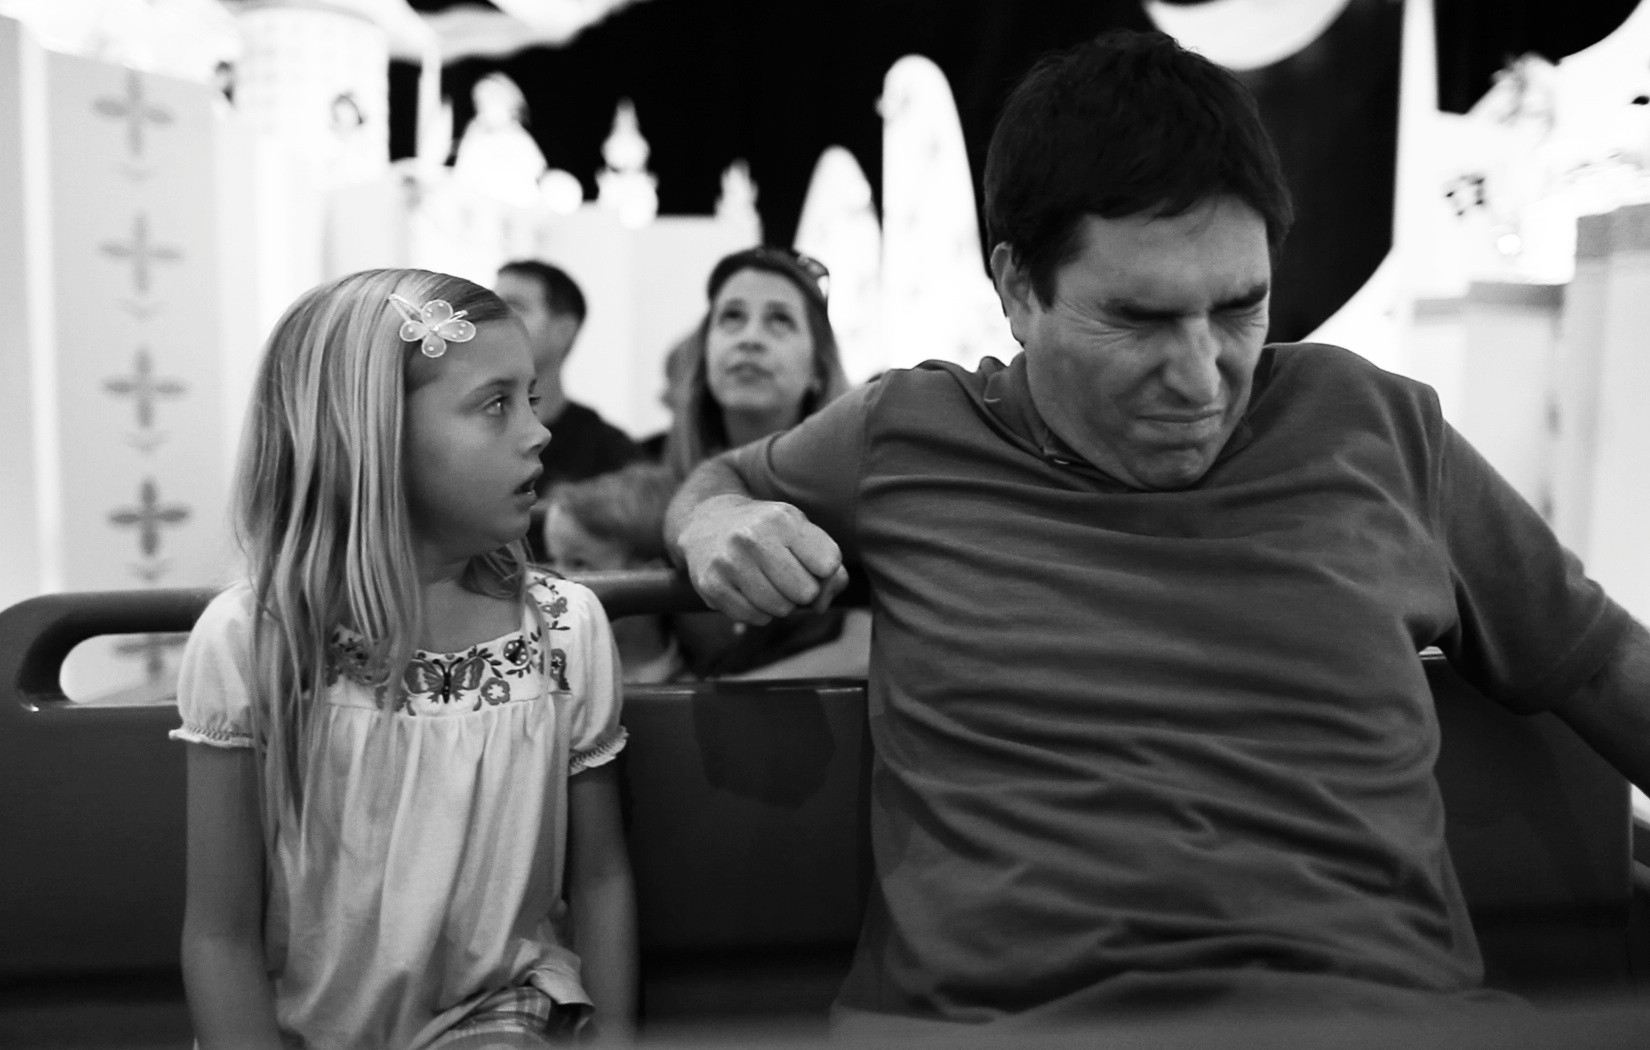 "Jim White (Roy Abramsohn, right) begins to unravel while taking his family, including daughter Sara (Katelynn Rodriguez), on a surreal trip to Disney World in the subversive ""Escape from Tomorrow."" Directed by Randy Moore and shot without Disney's permission, the film opens Oct. 18 at Sun-Ray Cinema."